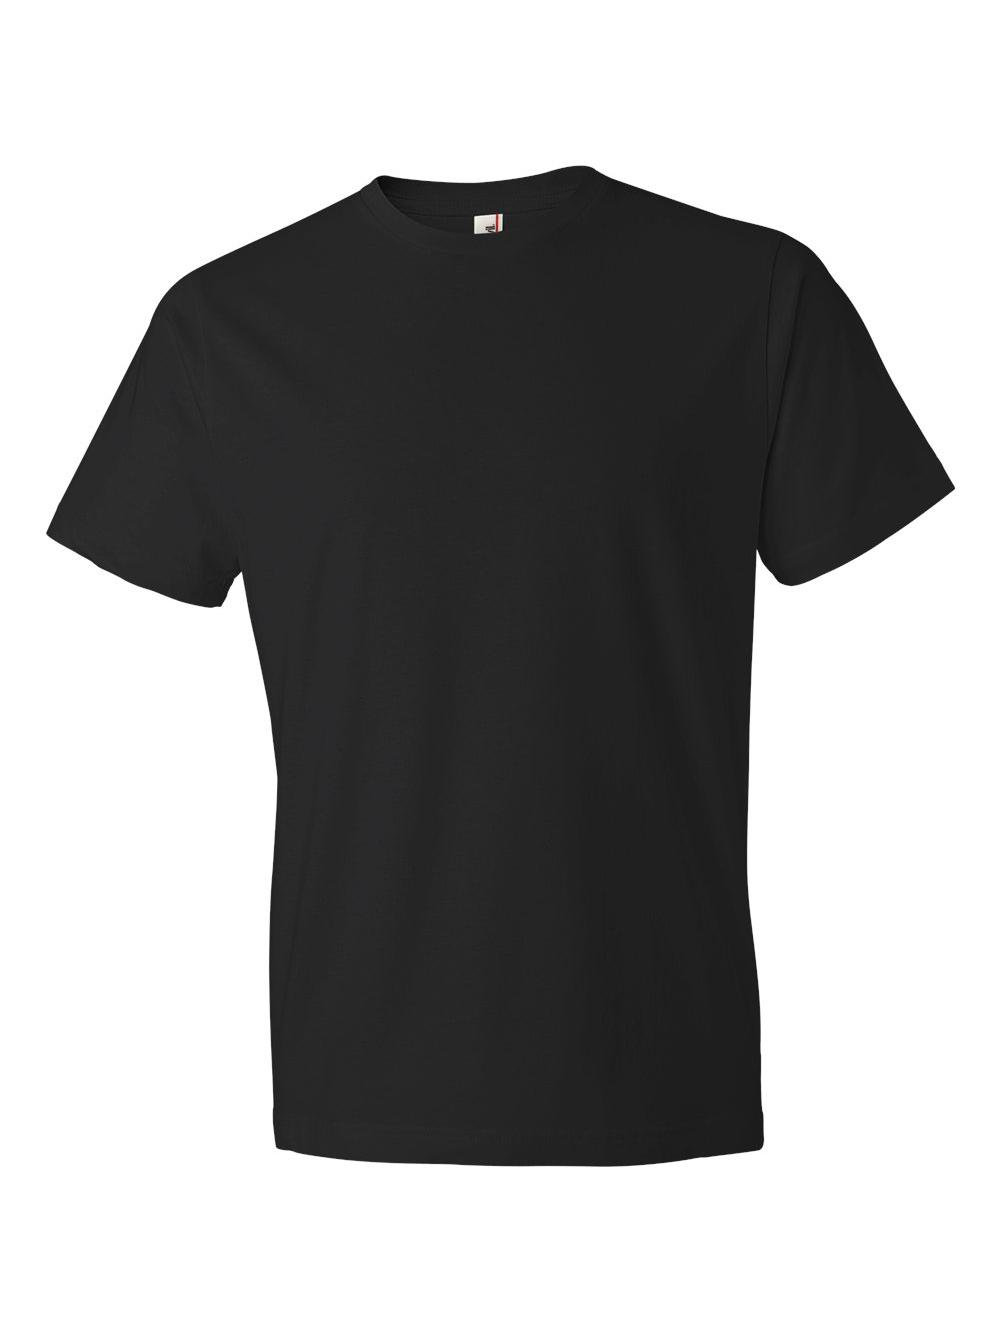 Anvil-Lightweight-Fashion-Short-Sleeve-T-Shirt-980 thumbnail 3